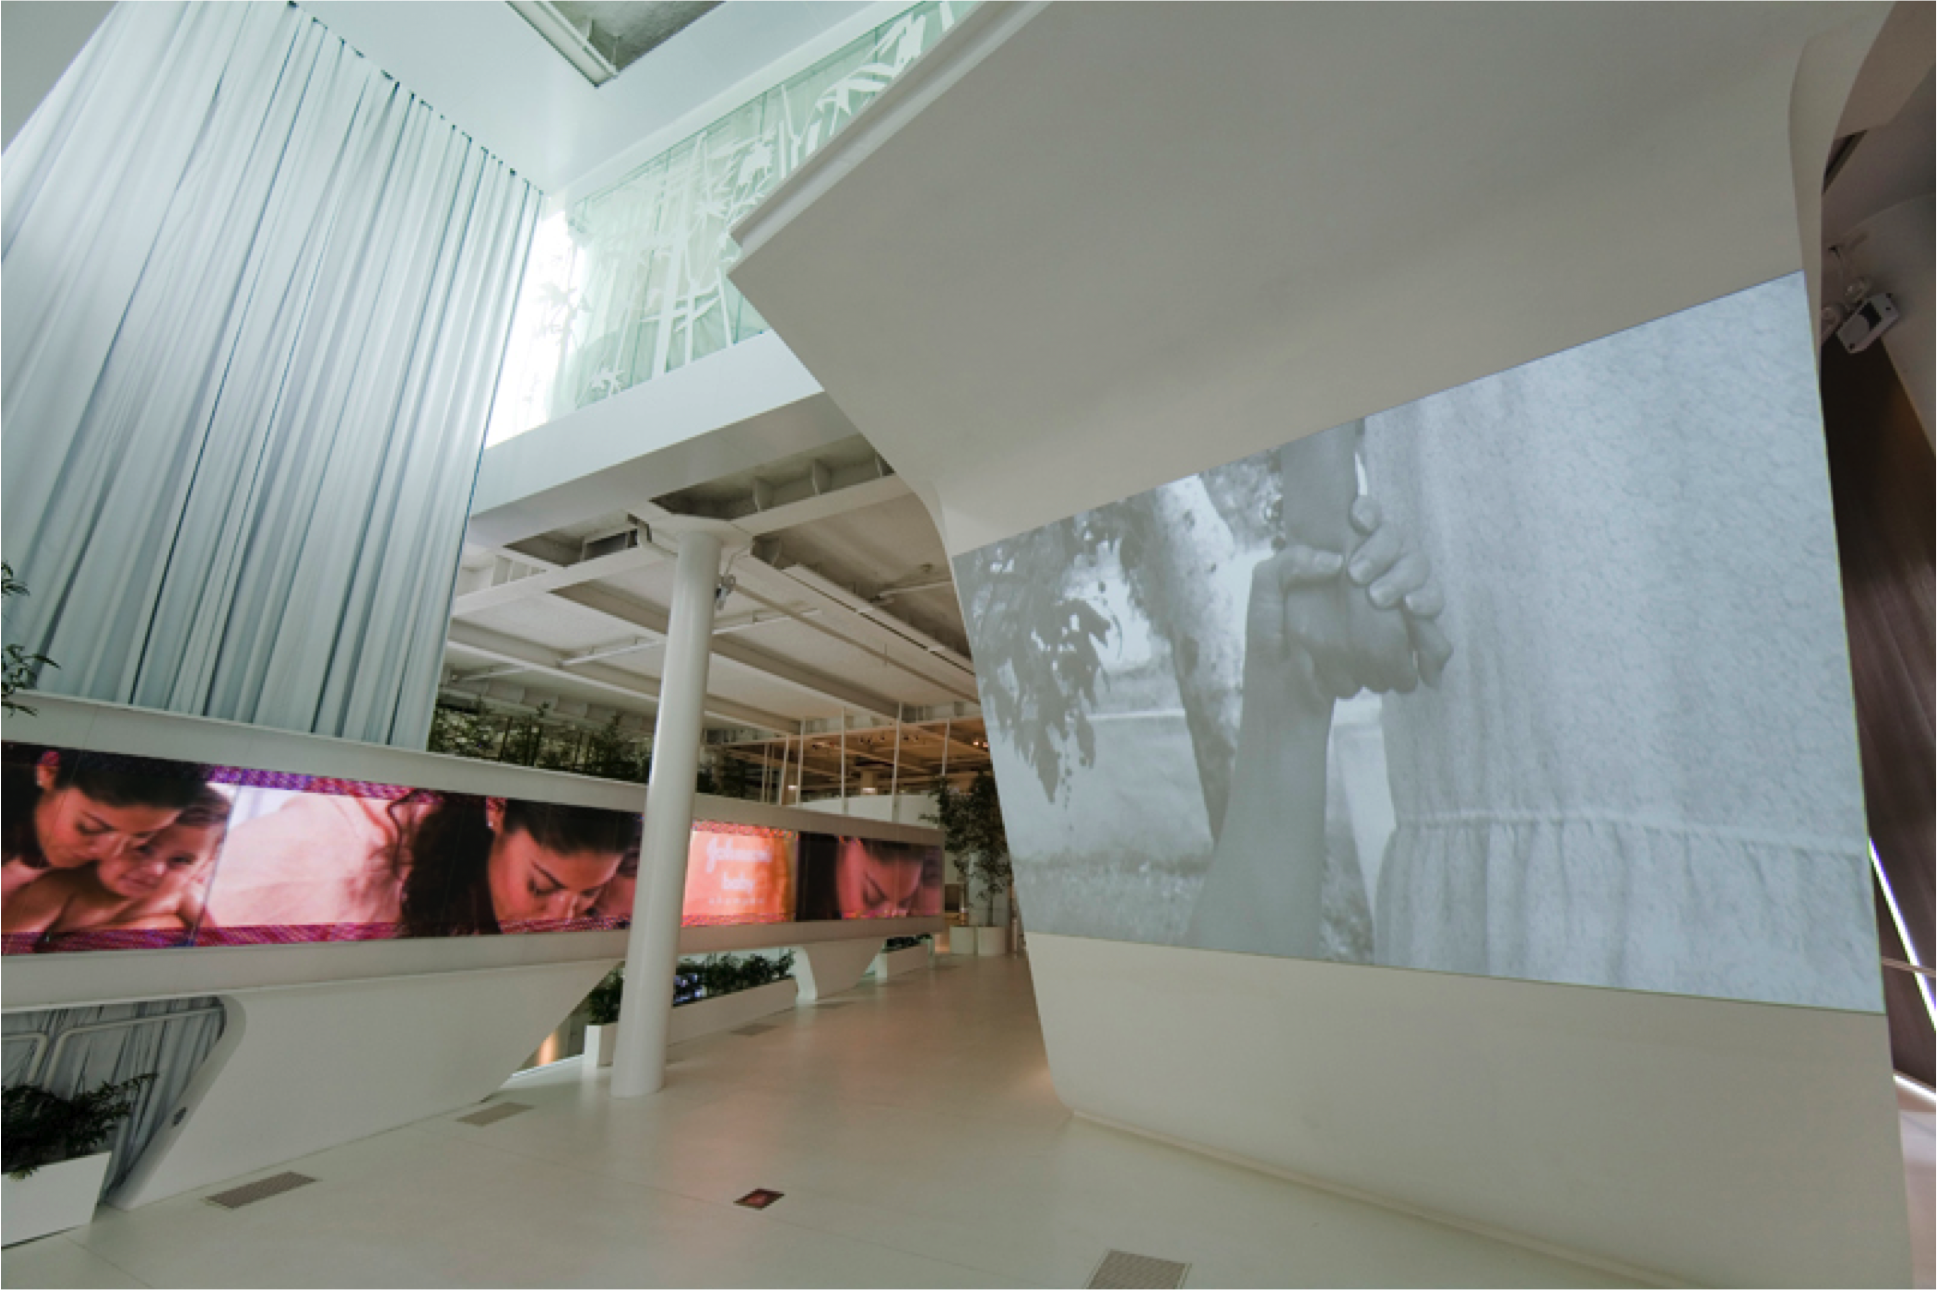 Projected Media and Displays